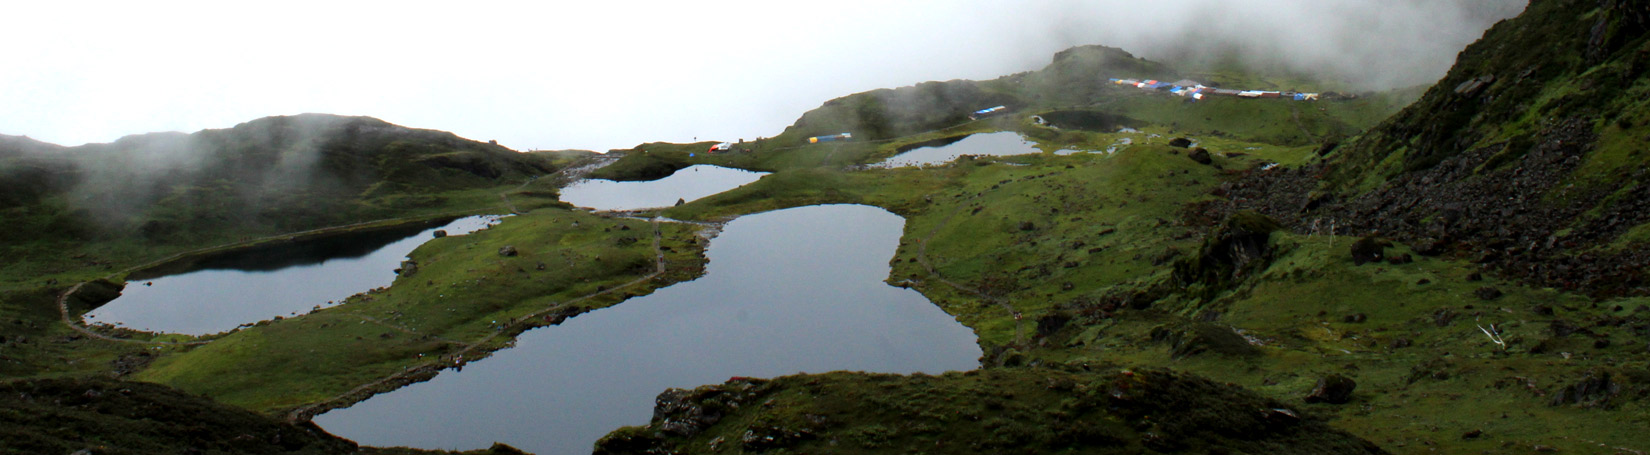 FIVE HOLY LAKES IN PANCH POKHARI